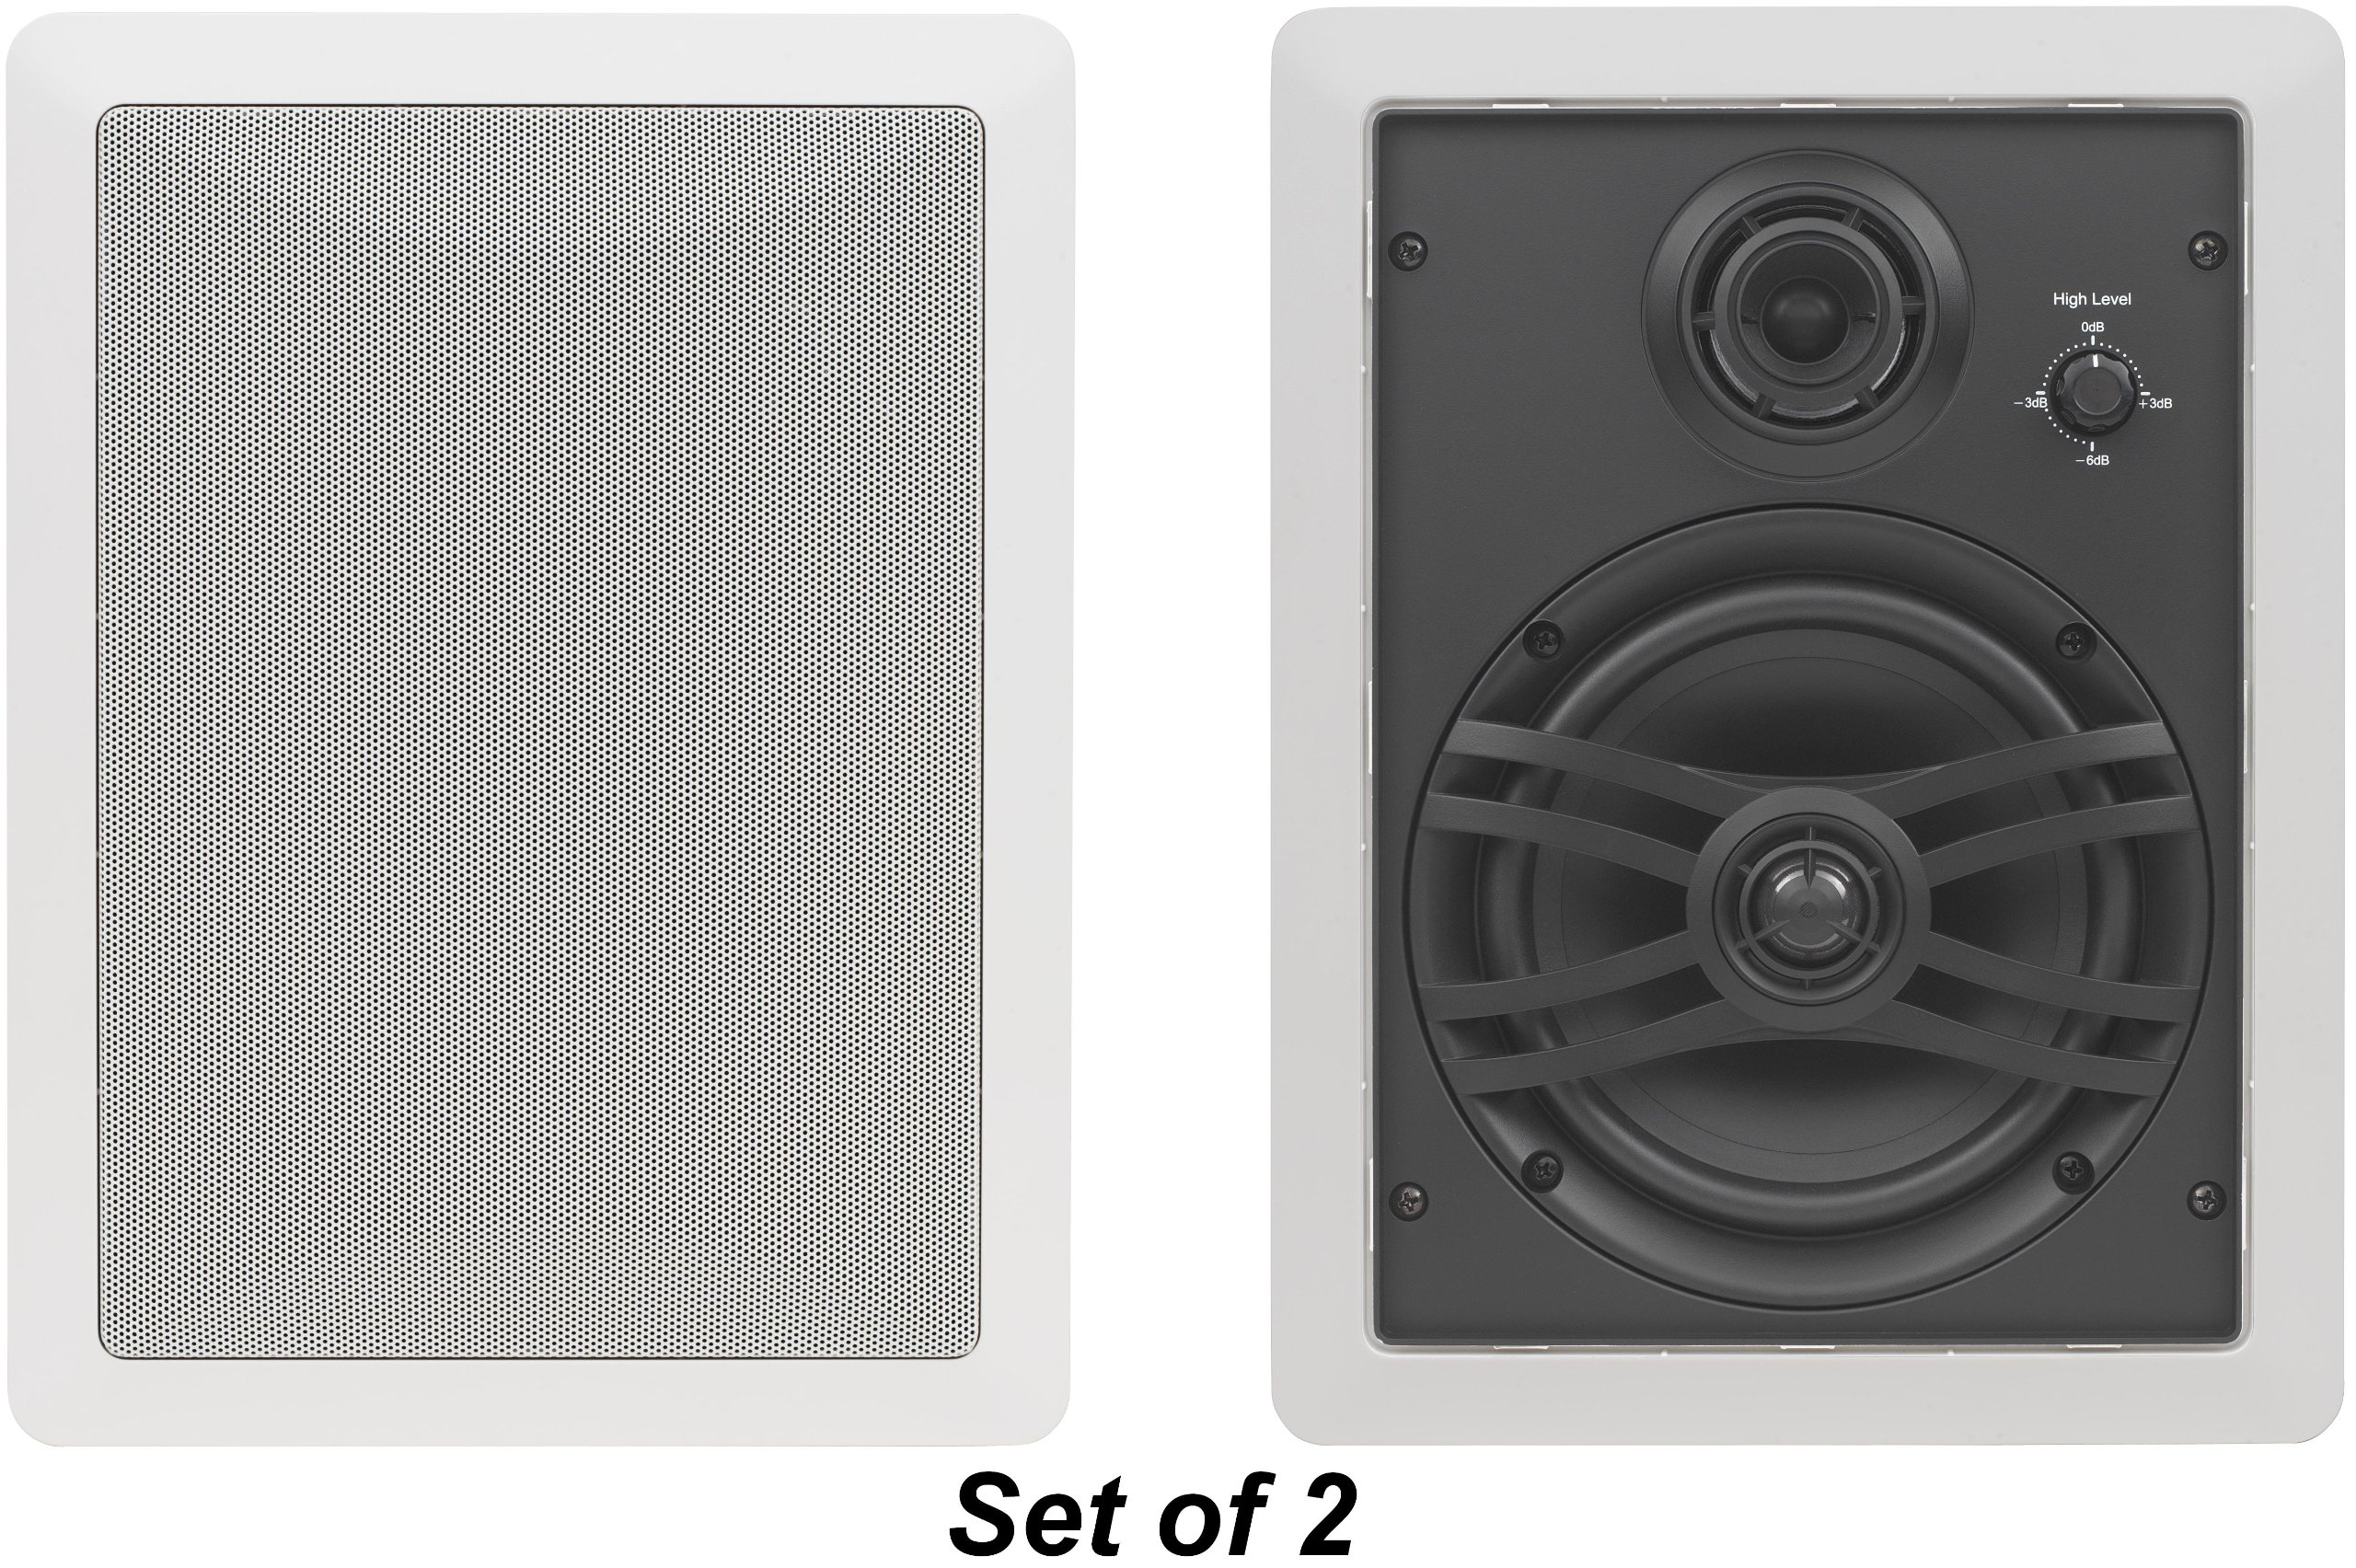 Yamaha Natural Sound Custom Easy-to-install In-Wall Flush Mount 3-Way 150 watts Speaker Set (1 Pair of 2 Speakers) with a 1'' Swivel Titanium Dome Tweeter, 1-5/8'' Swivel Aluminum Dome Midrange Driver & 6.5'' Kevlar Cone Woofer for A Regular Size Room or 2 S by YAMAHA